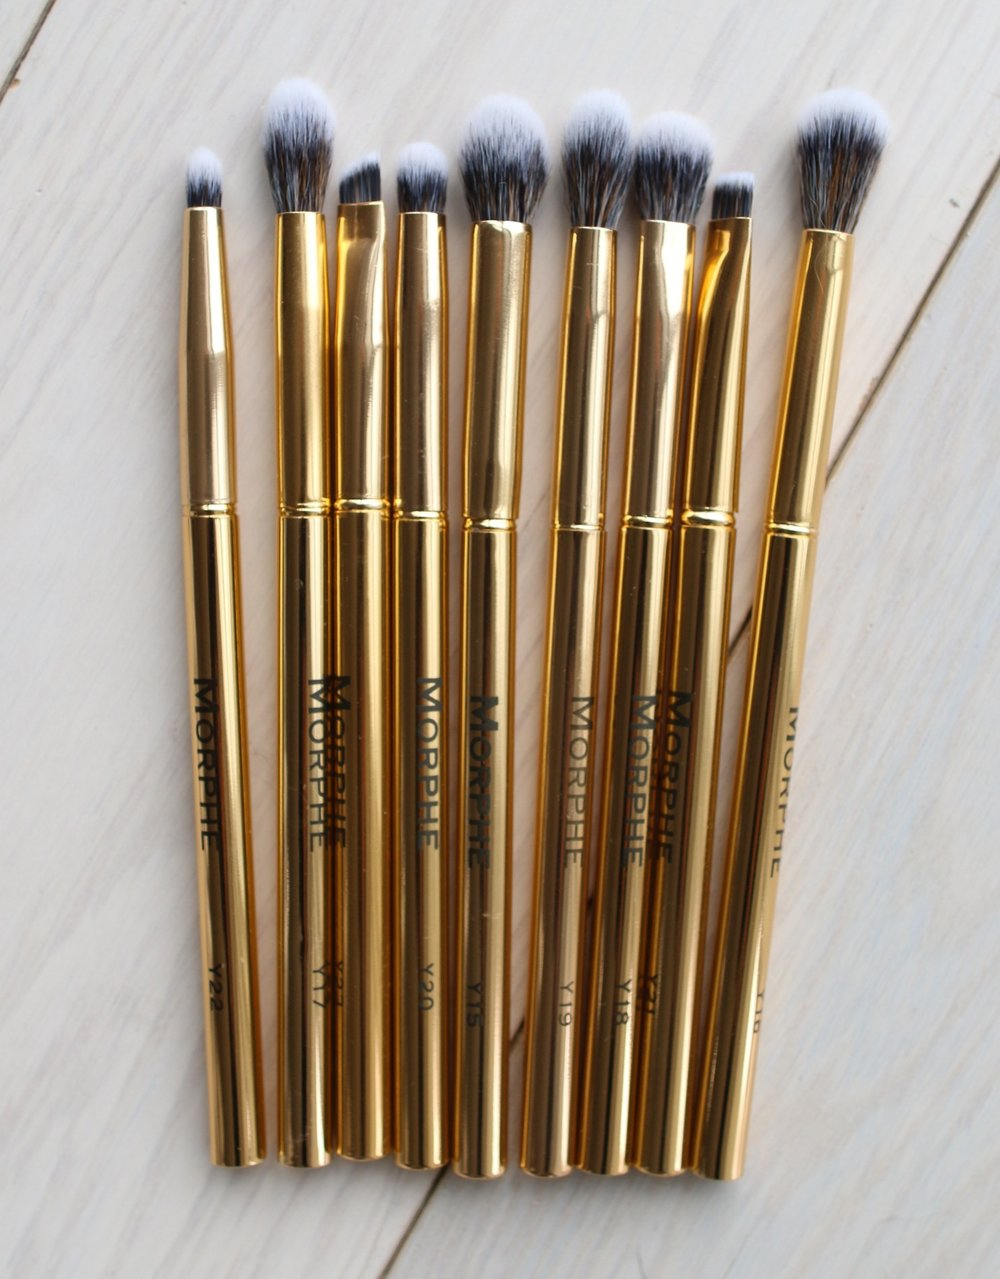 best eyeshadow brushes morphe. now if these brushes don\u0027t scream perfectly blended eye look!!! i couldn\u0027t wait to do my makeup when got these. they are definitely some of new best eyeshadow morphe r